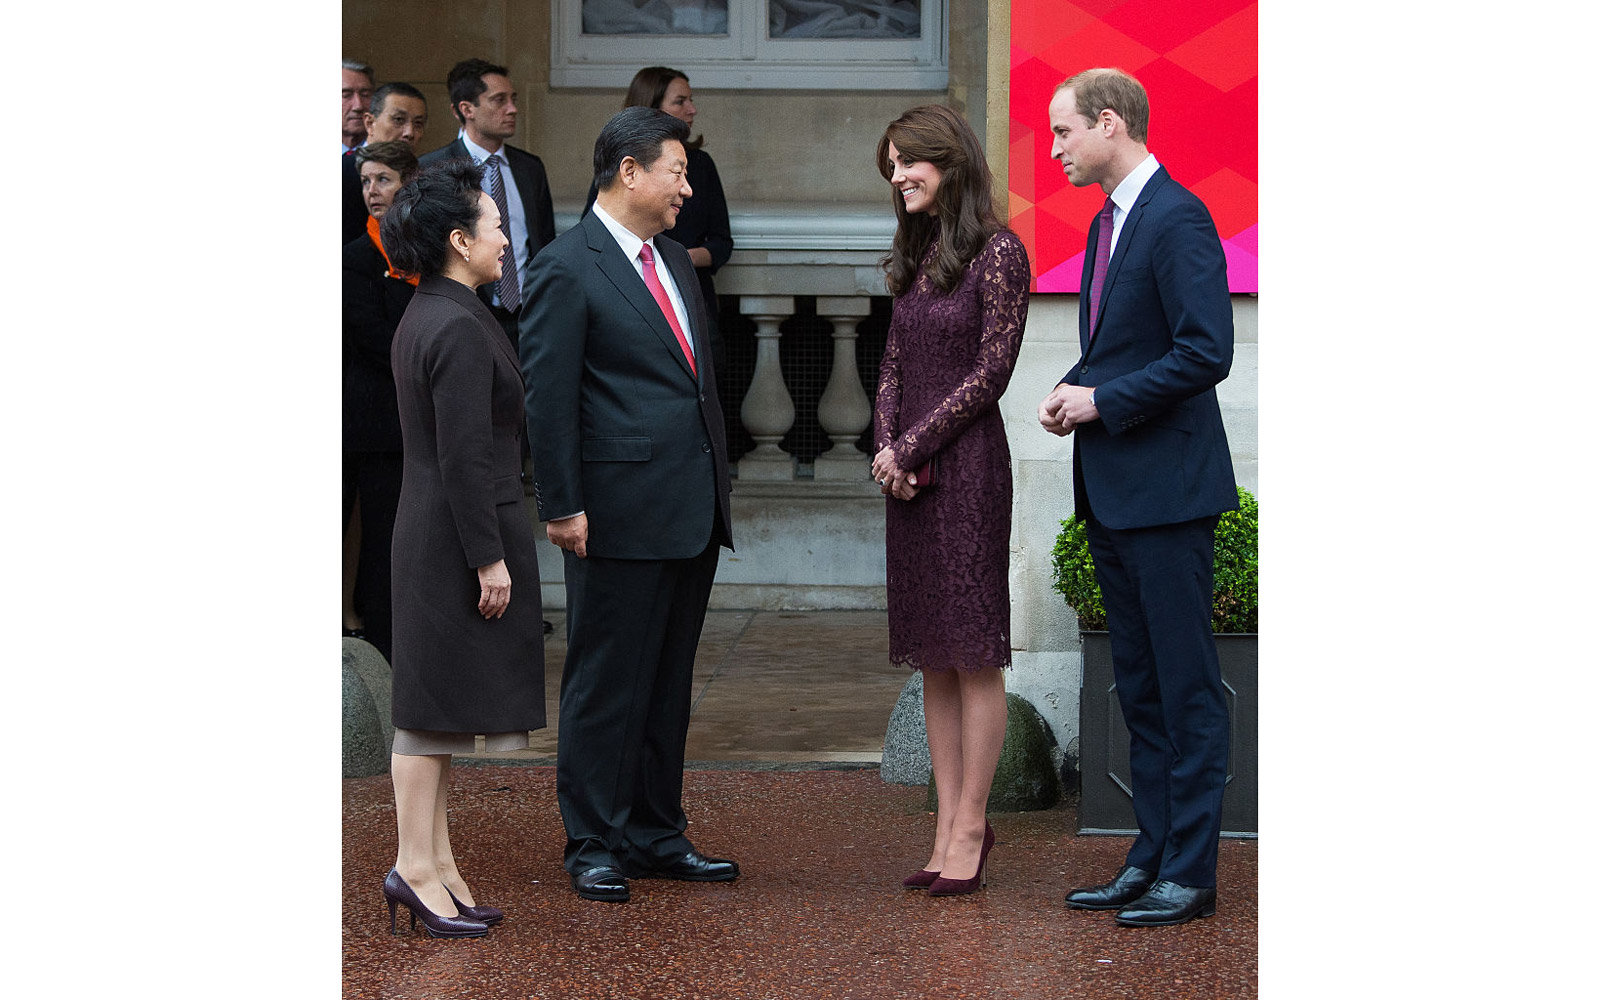 LONDON, ENGLAND - OCTOBER 21:  Prince William, Duke of Cambridge and Catherine, Duchess of Cambridge greet Chinese President Xi Jinping at a creative industry event to celebrate cultural collaboration between the UK and China at Lancaster House on October